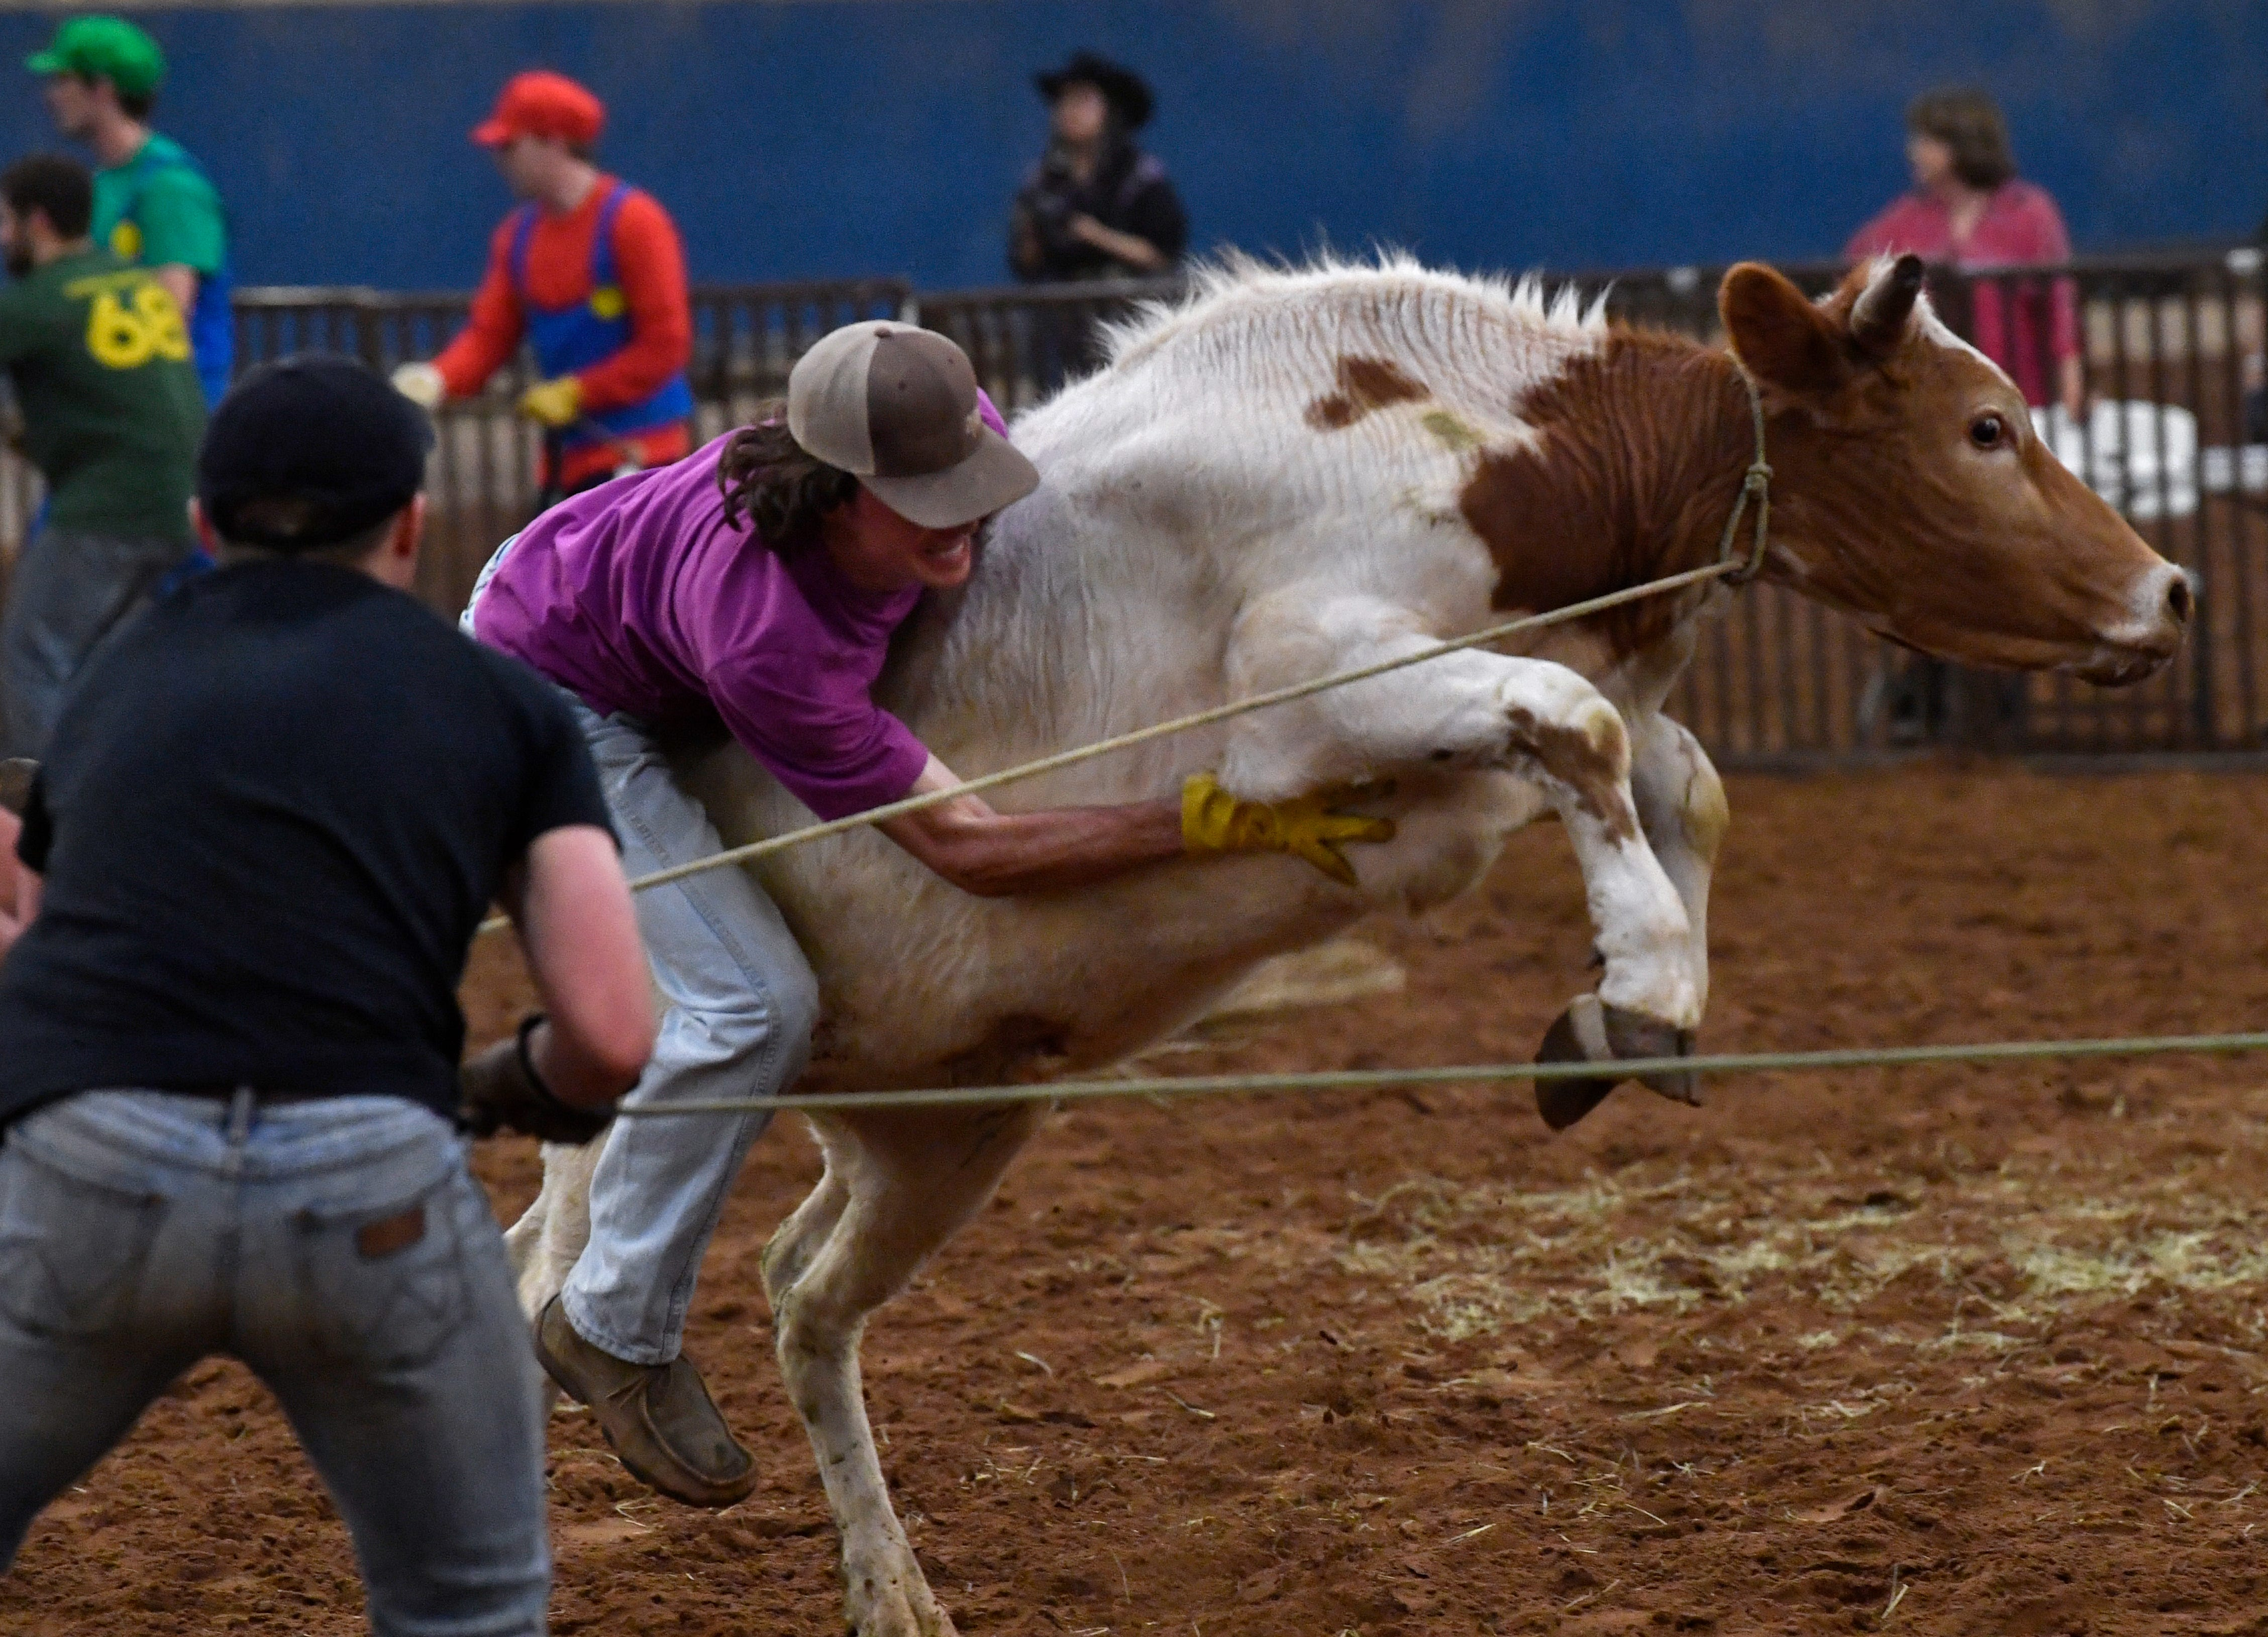 Luke Fender tries to ride a steer during Thursday's ACU Intramural Rodeo. Teams had to control their steer, then allow one of their number to climb on the animal's back and ride it across the arena.